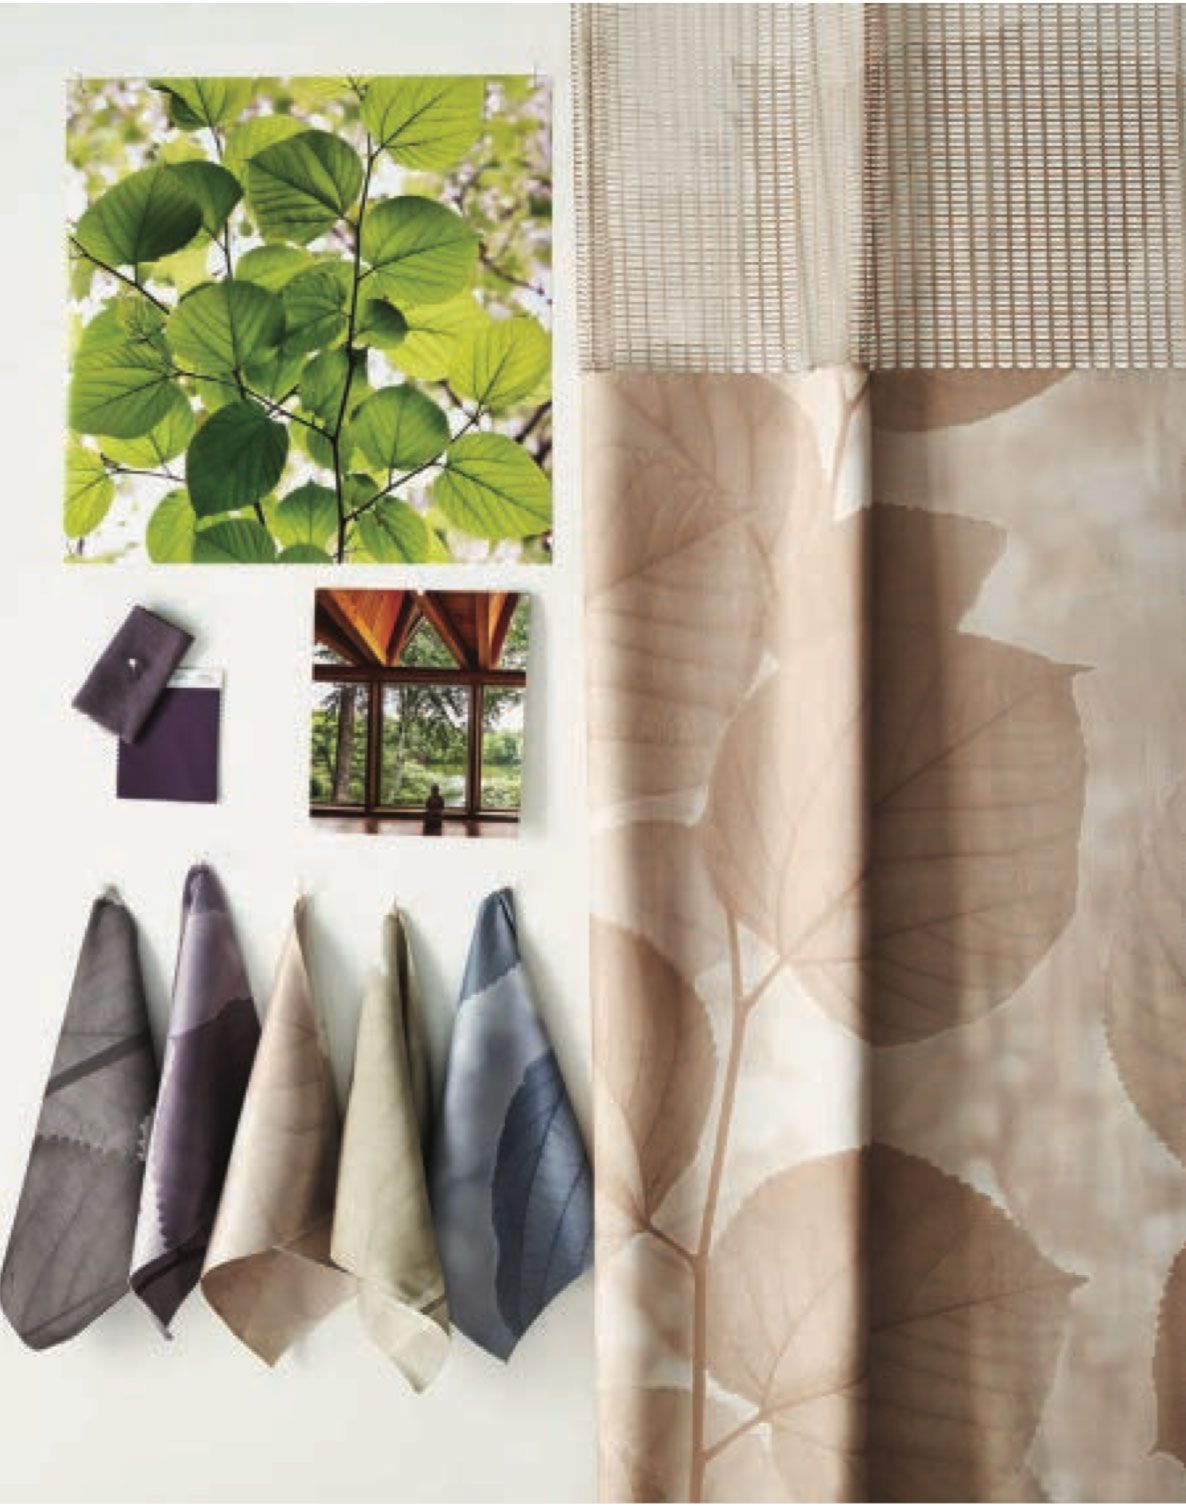 Carnegie S Panorama Privacy Curtains A New Collection Of Cubicle Curtains Based On My Photographs Has Just Been Curtains Privacy Curtains Digital Print Fabric